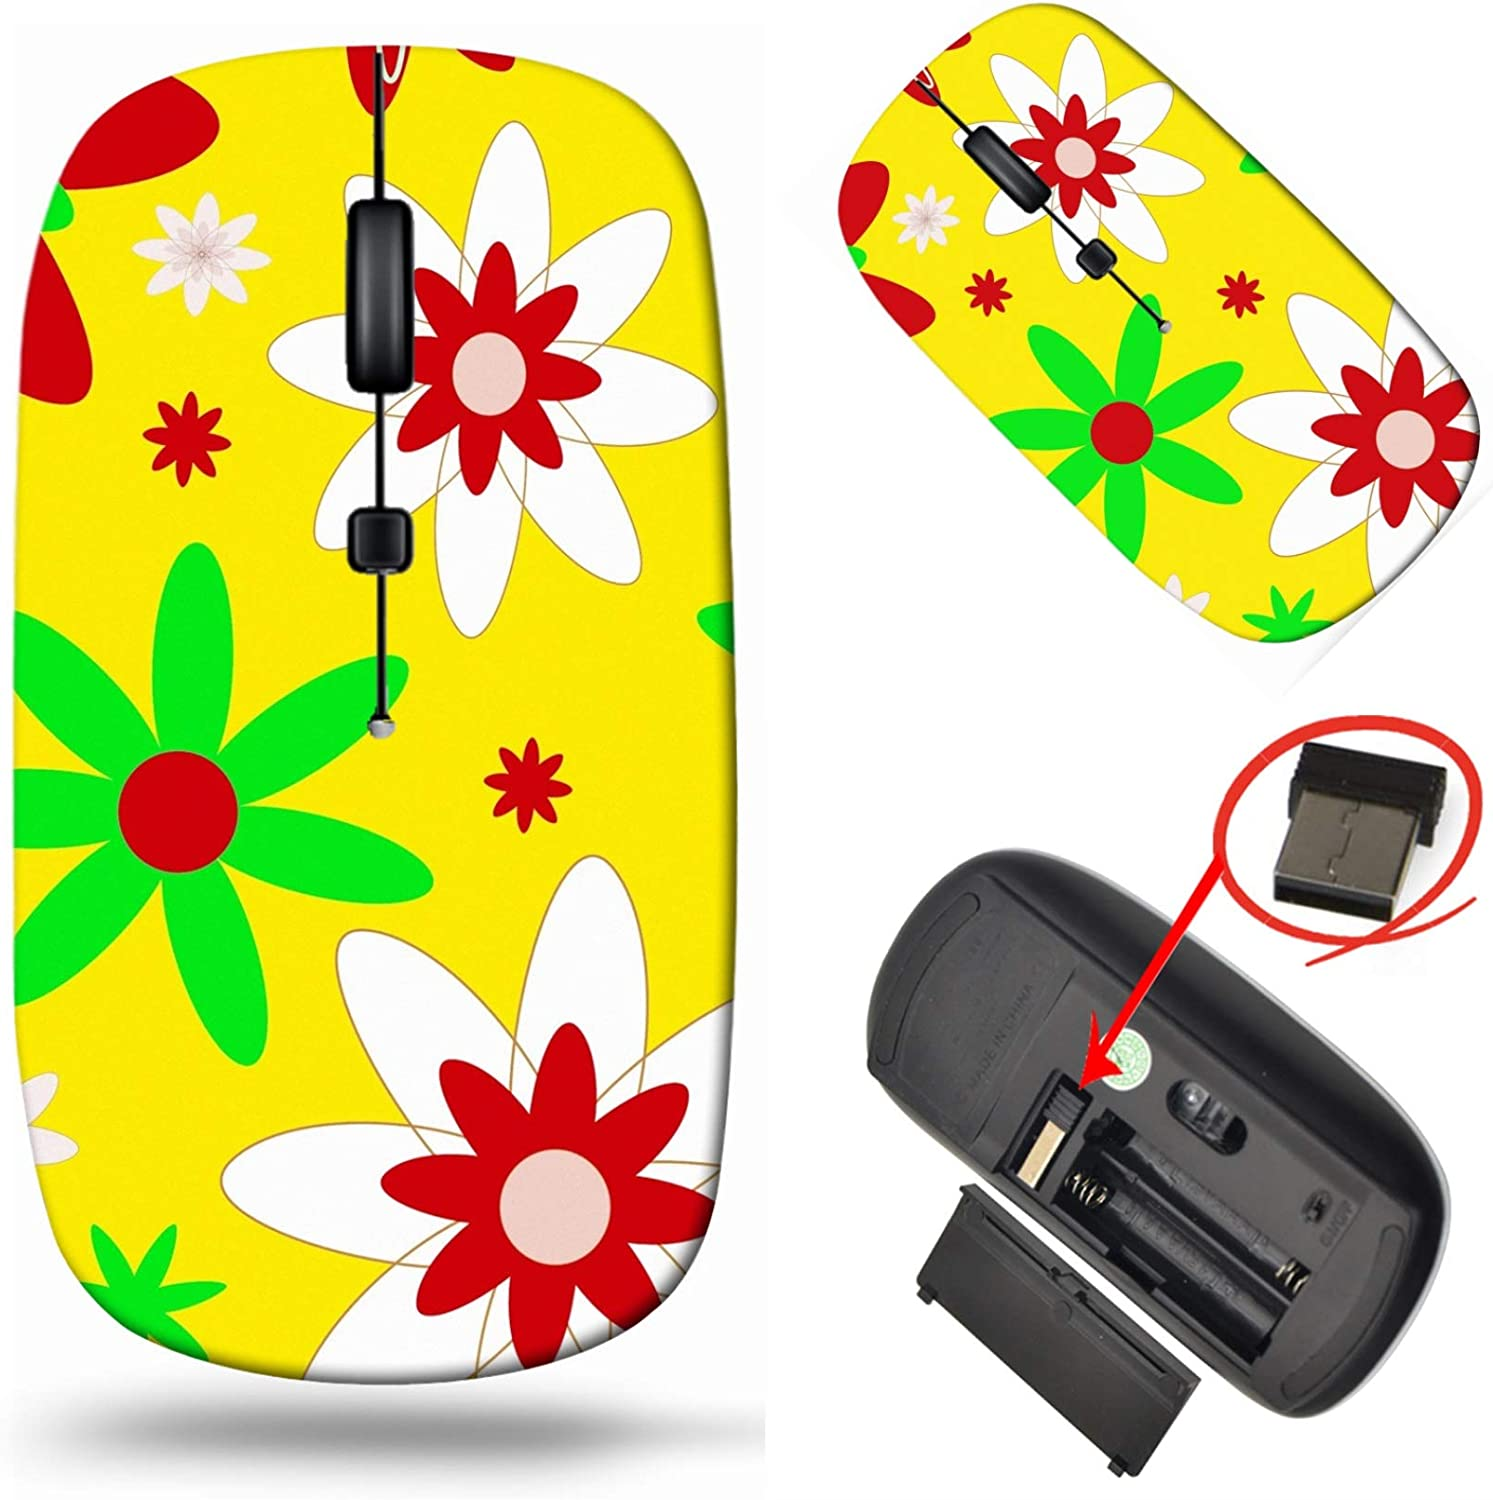 MSD Wireless Mouse Laptop 2.4G Travel with Mice Shipping included ...